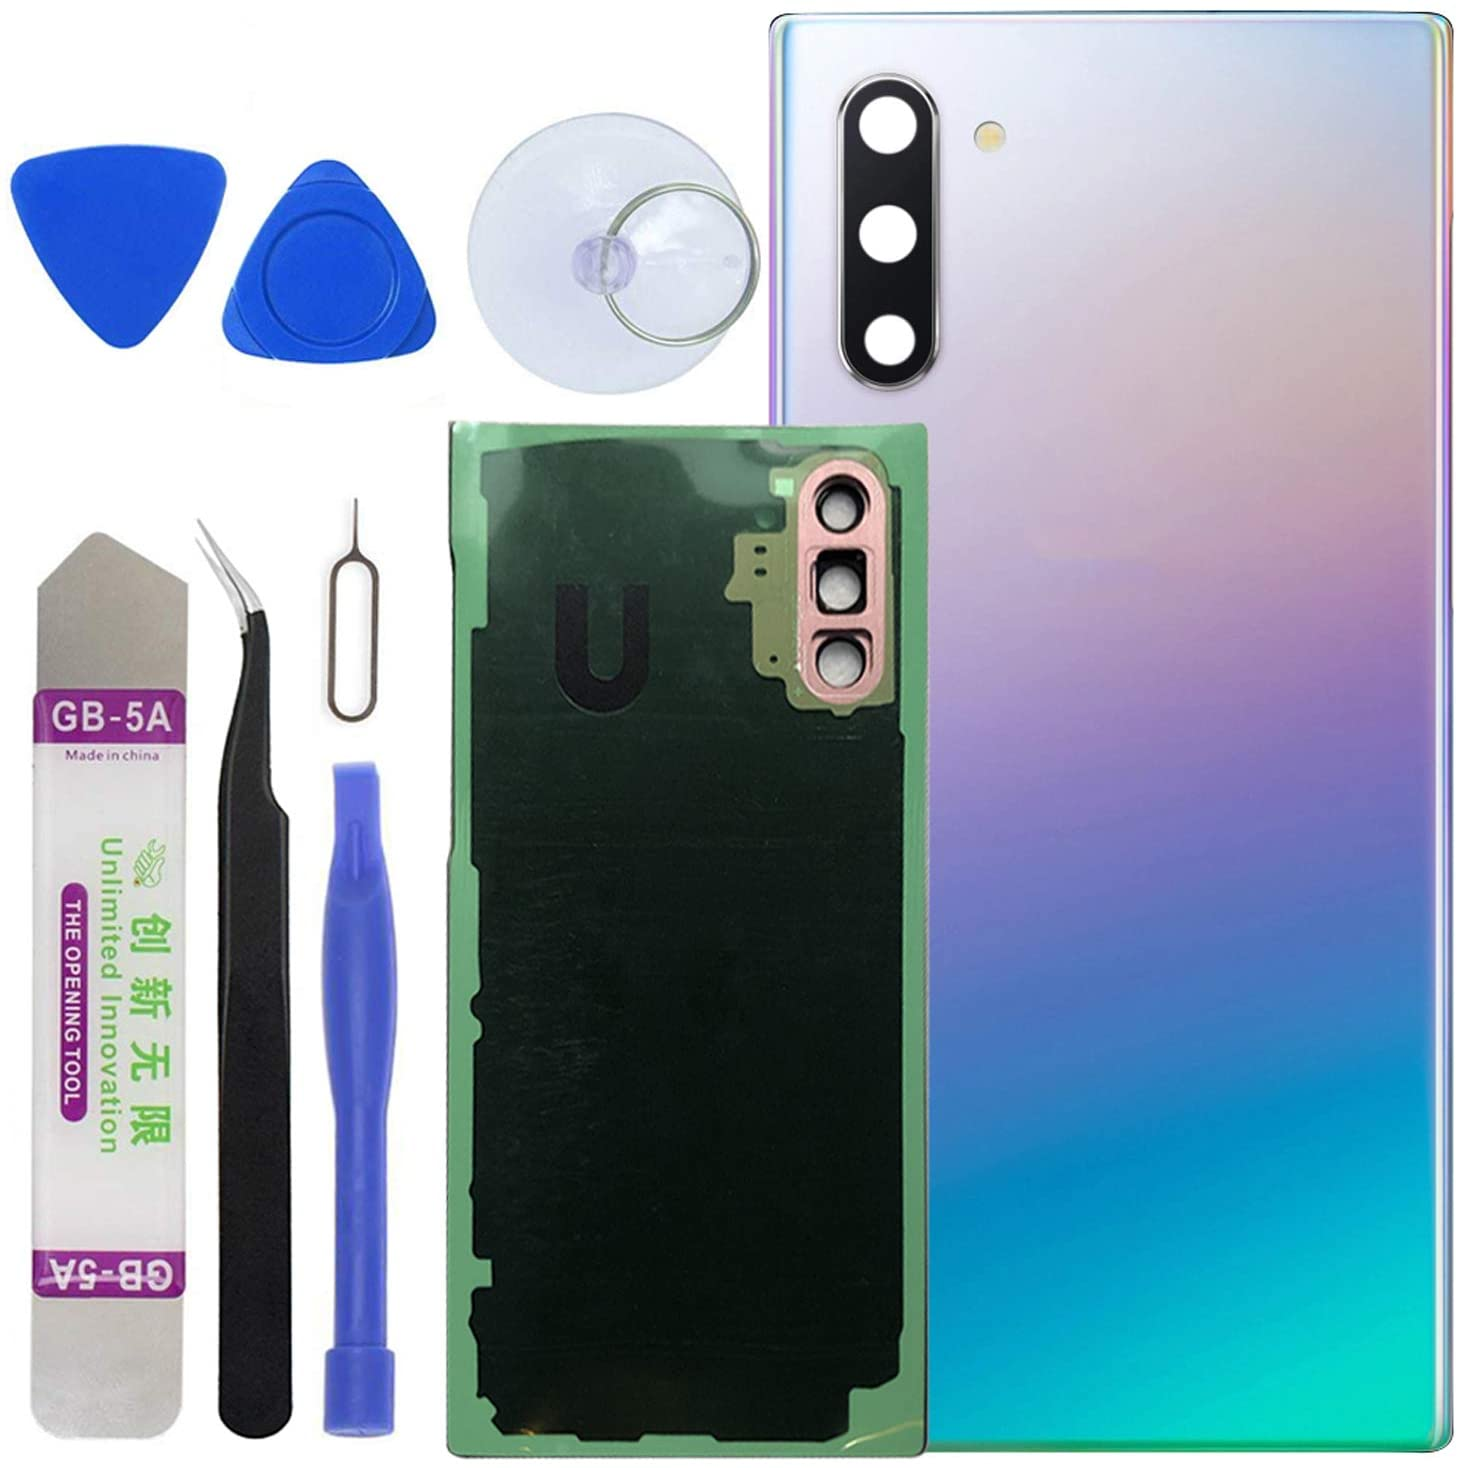 LUVSS Back Glass Assembly for [Samsung Galaxy Note 10] N970 Rear Glass Panel Cover Case Housing Replacement + Camera Lens + Opening Tools Kit [Not for Note 10+ Plus] (Aura Glow)